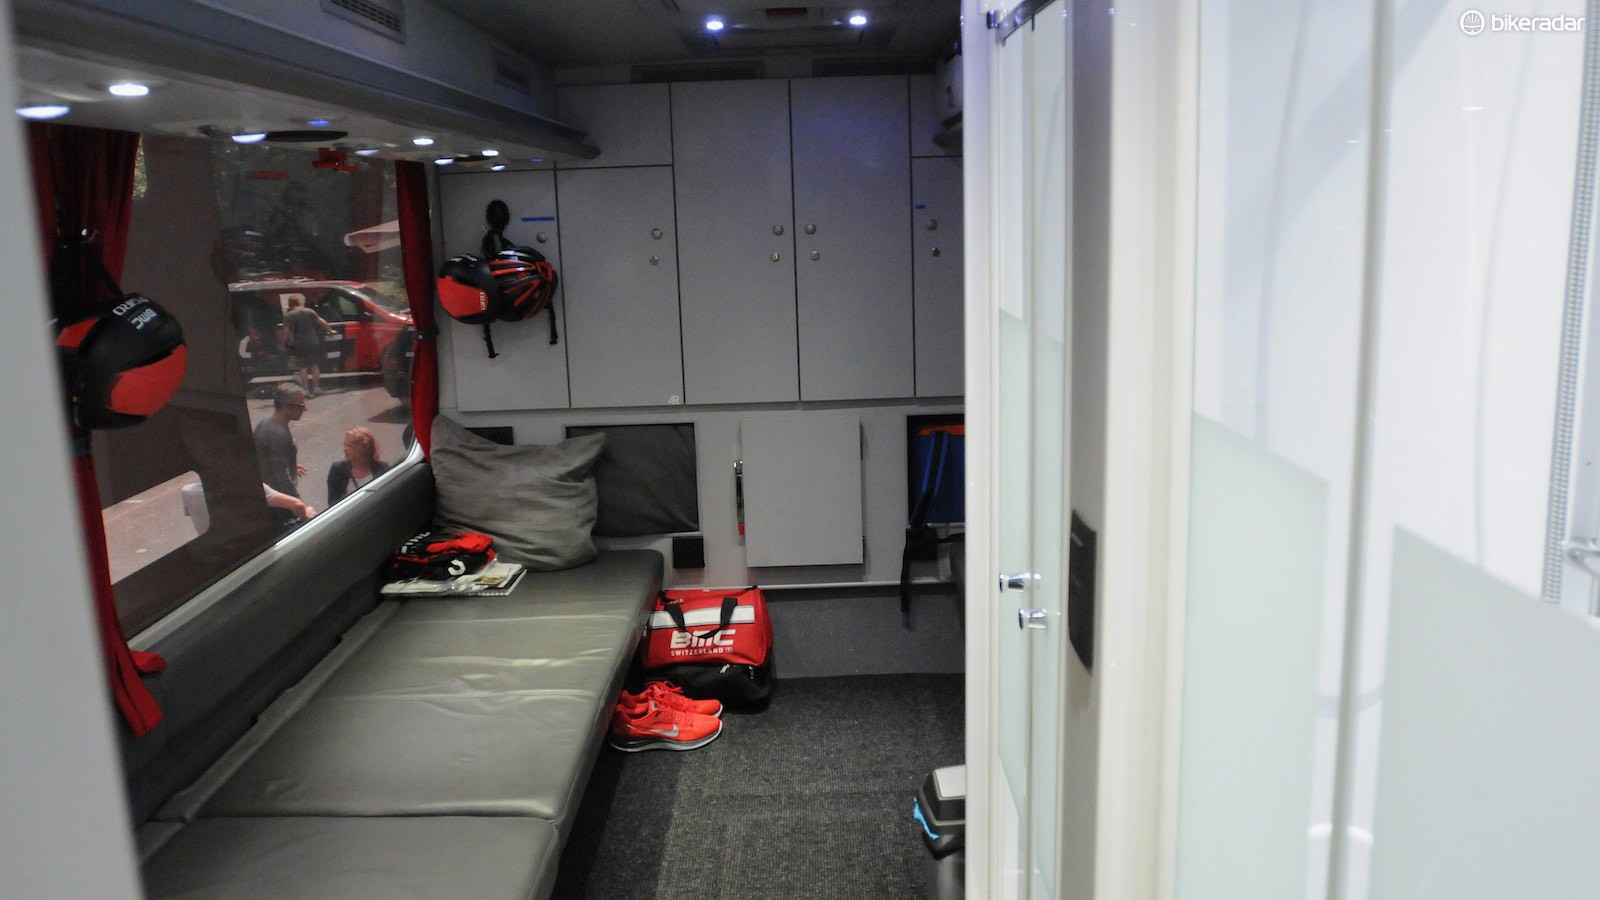 The rear lounge area of the bus has a pair of showers on the right, and room for three riders to change at once. It's also used for pre-race massage and meetings.